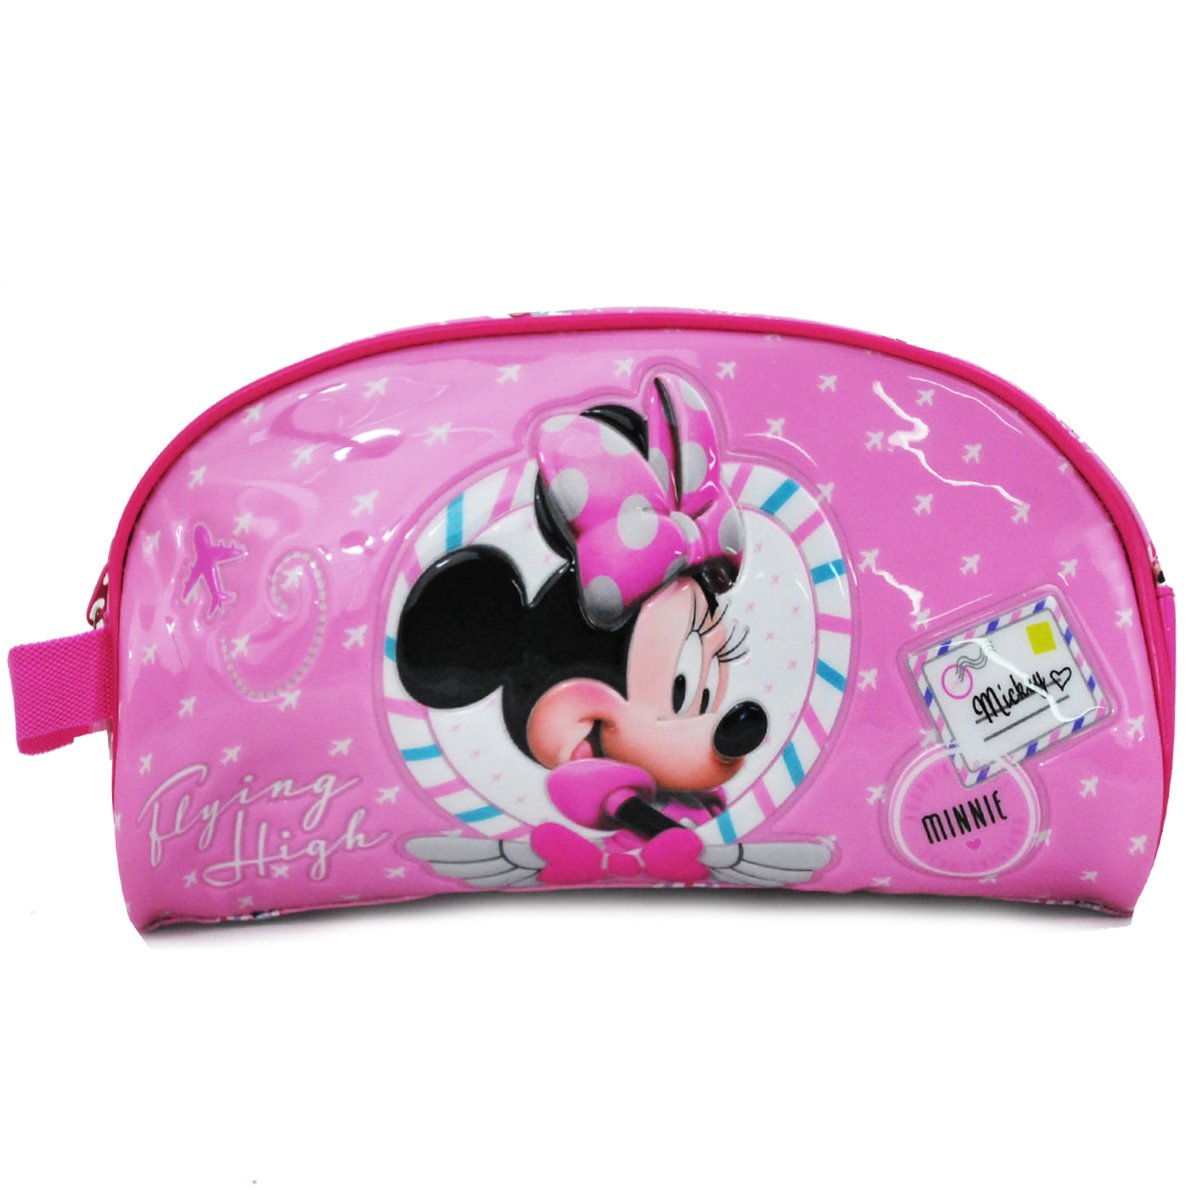 Trousse de Toilette Enfant MINNIE FLYING 21cm - Rose